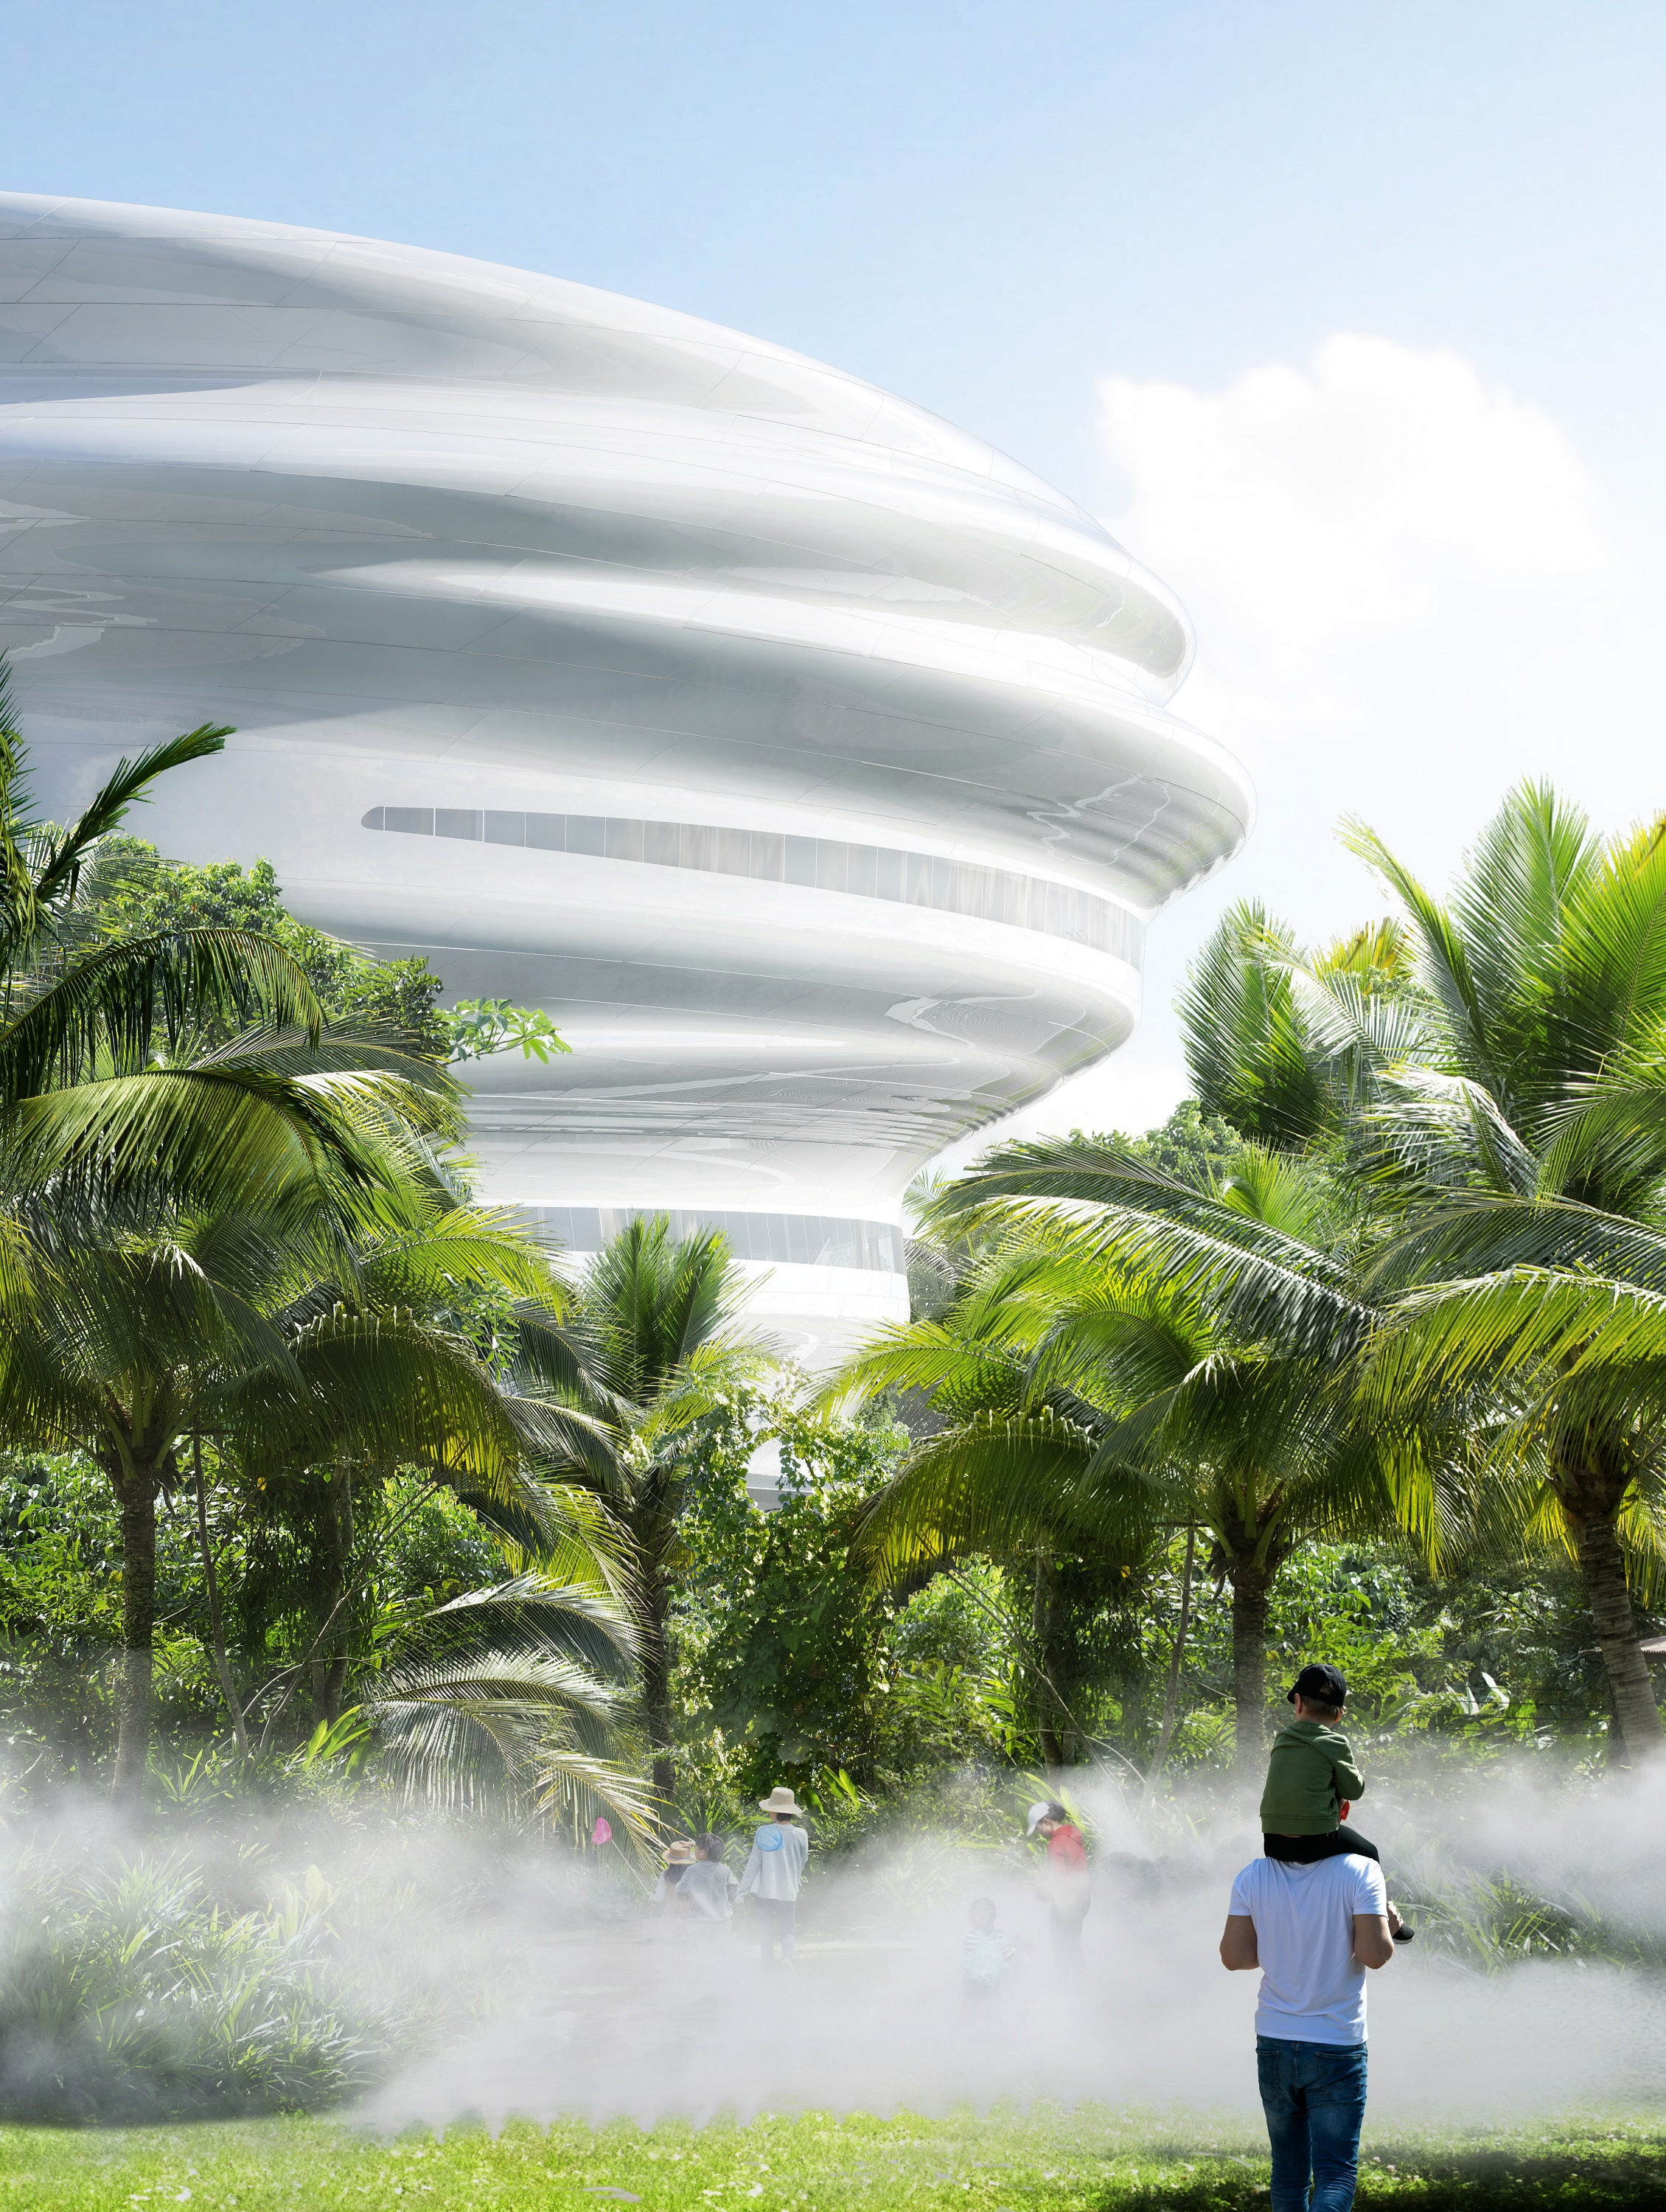 03_MAD_Hainan Science and Technology Museum_architecture with nature